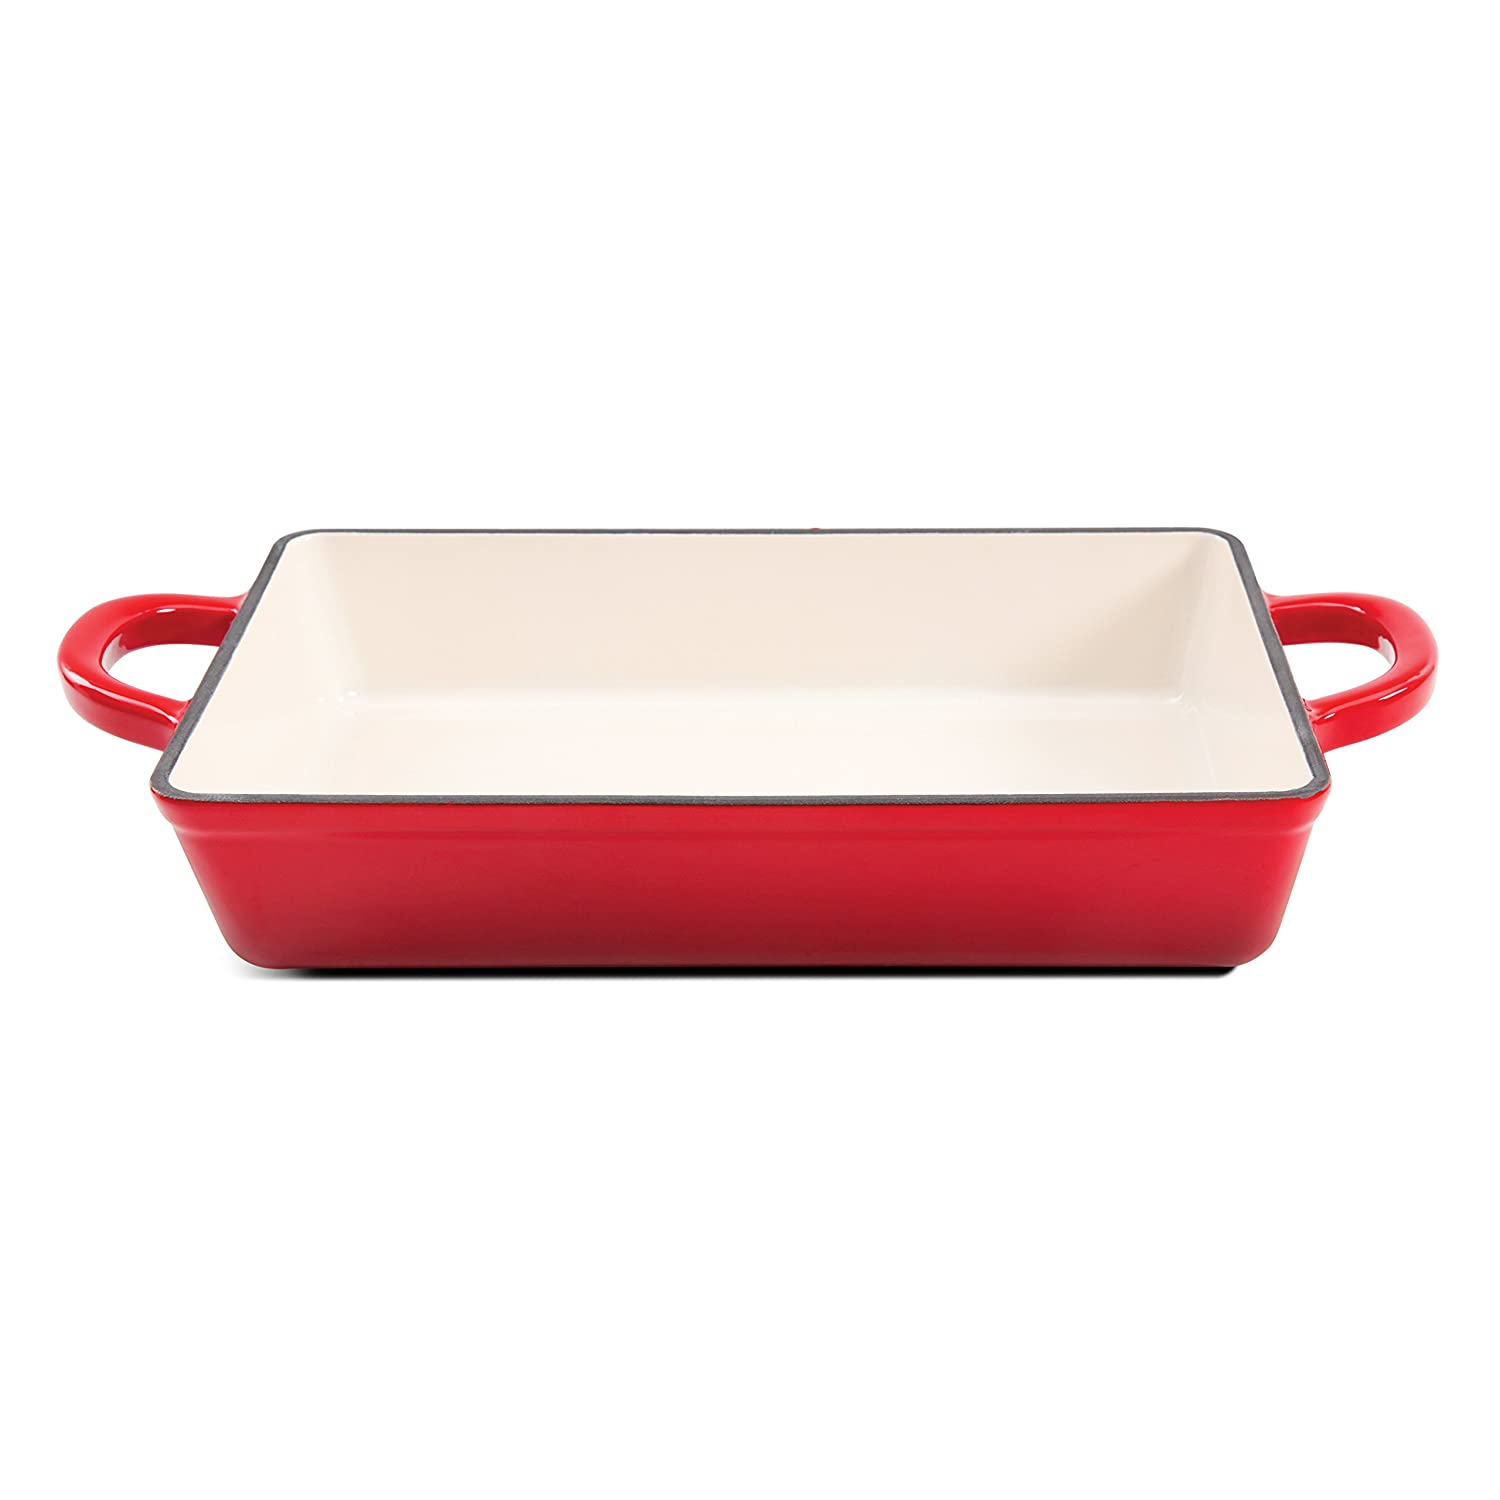 Crock Pot 112006.01 Artisan 13 Inch Enameled Cast Iron Lasagna Pan, Scarlet Red